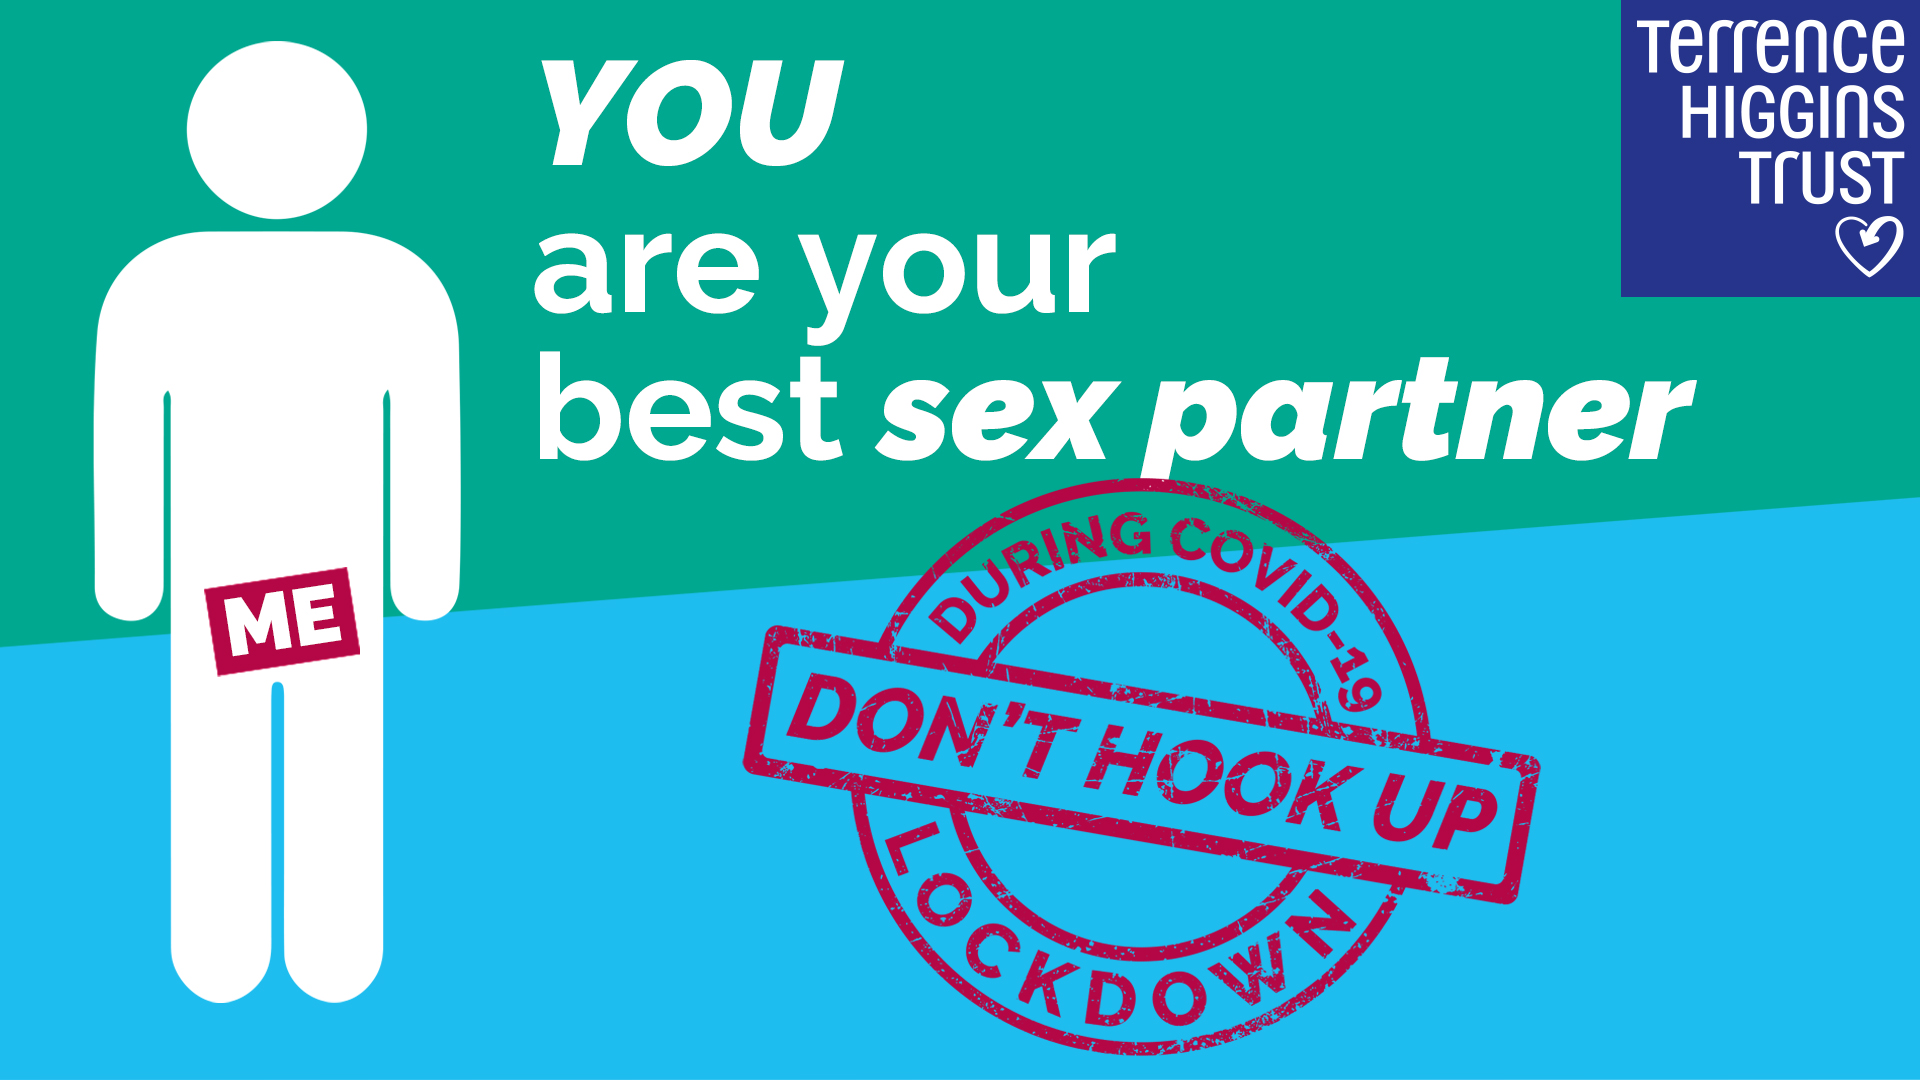 THT's Dr Michael Brady has urged people to stop hooking up during the lockdown